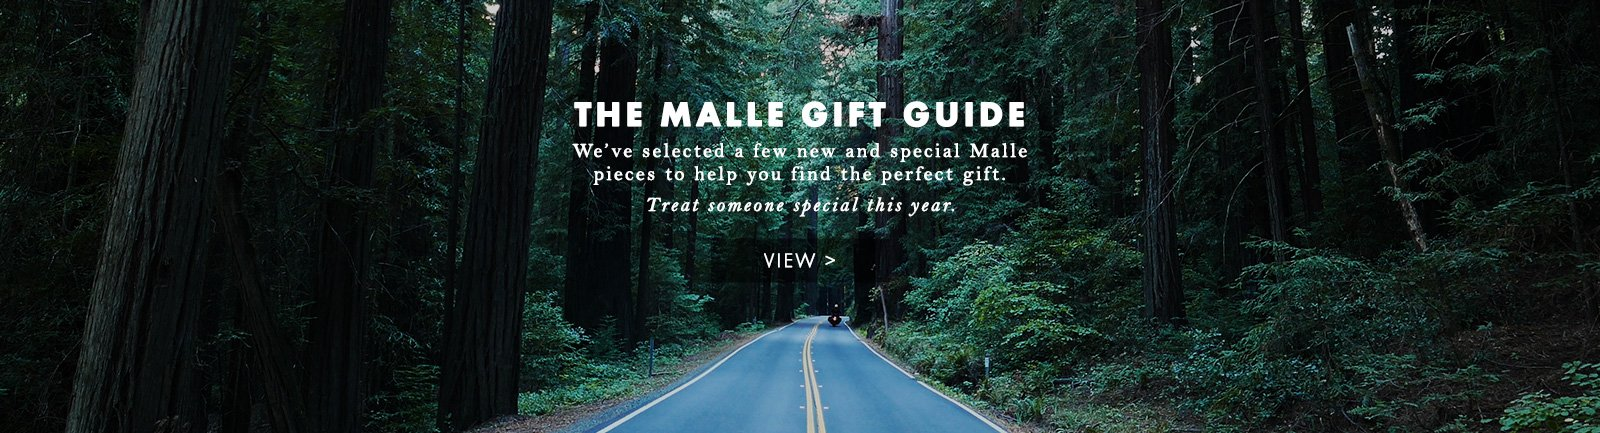 Malle-London-Gift-Guide